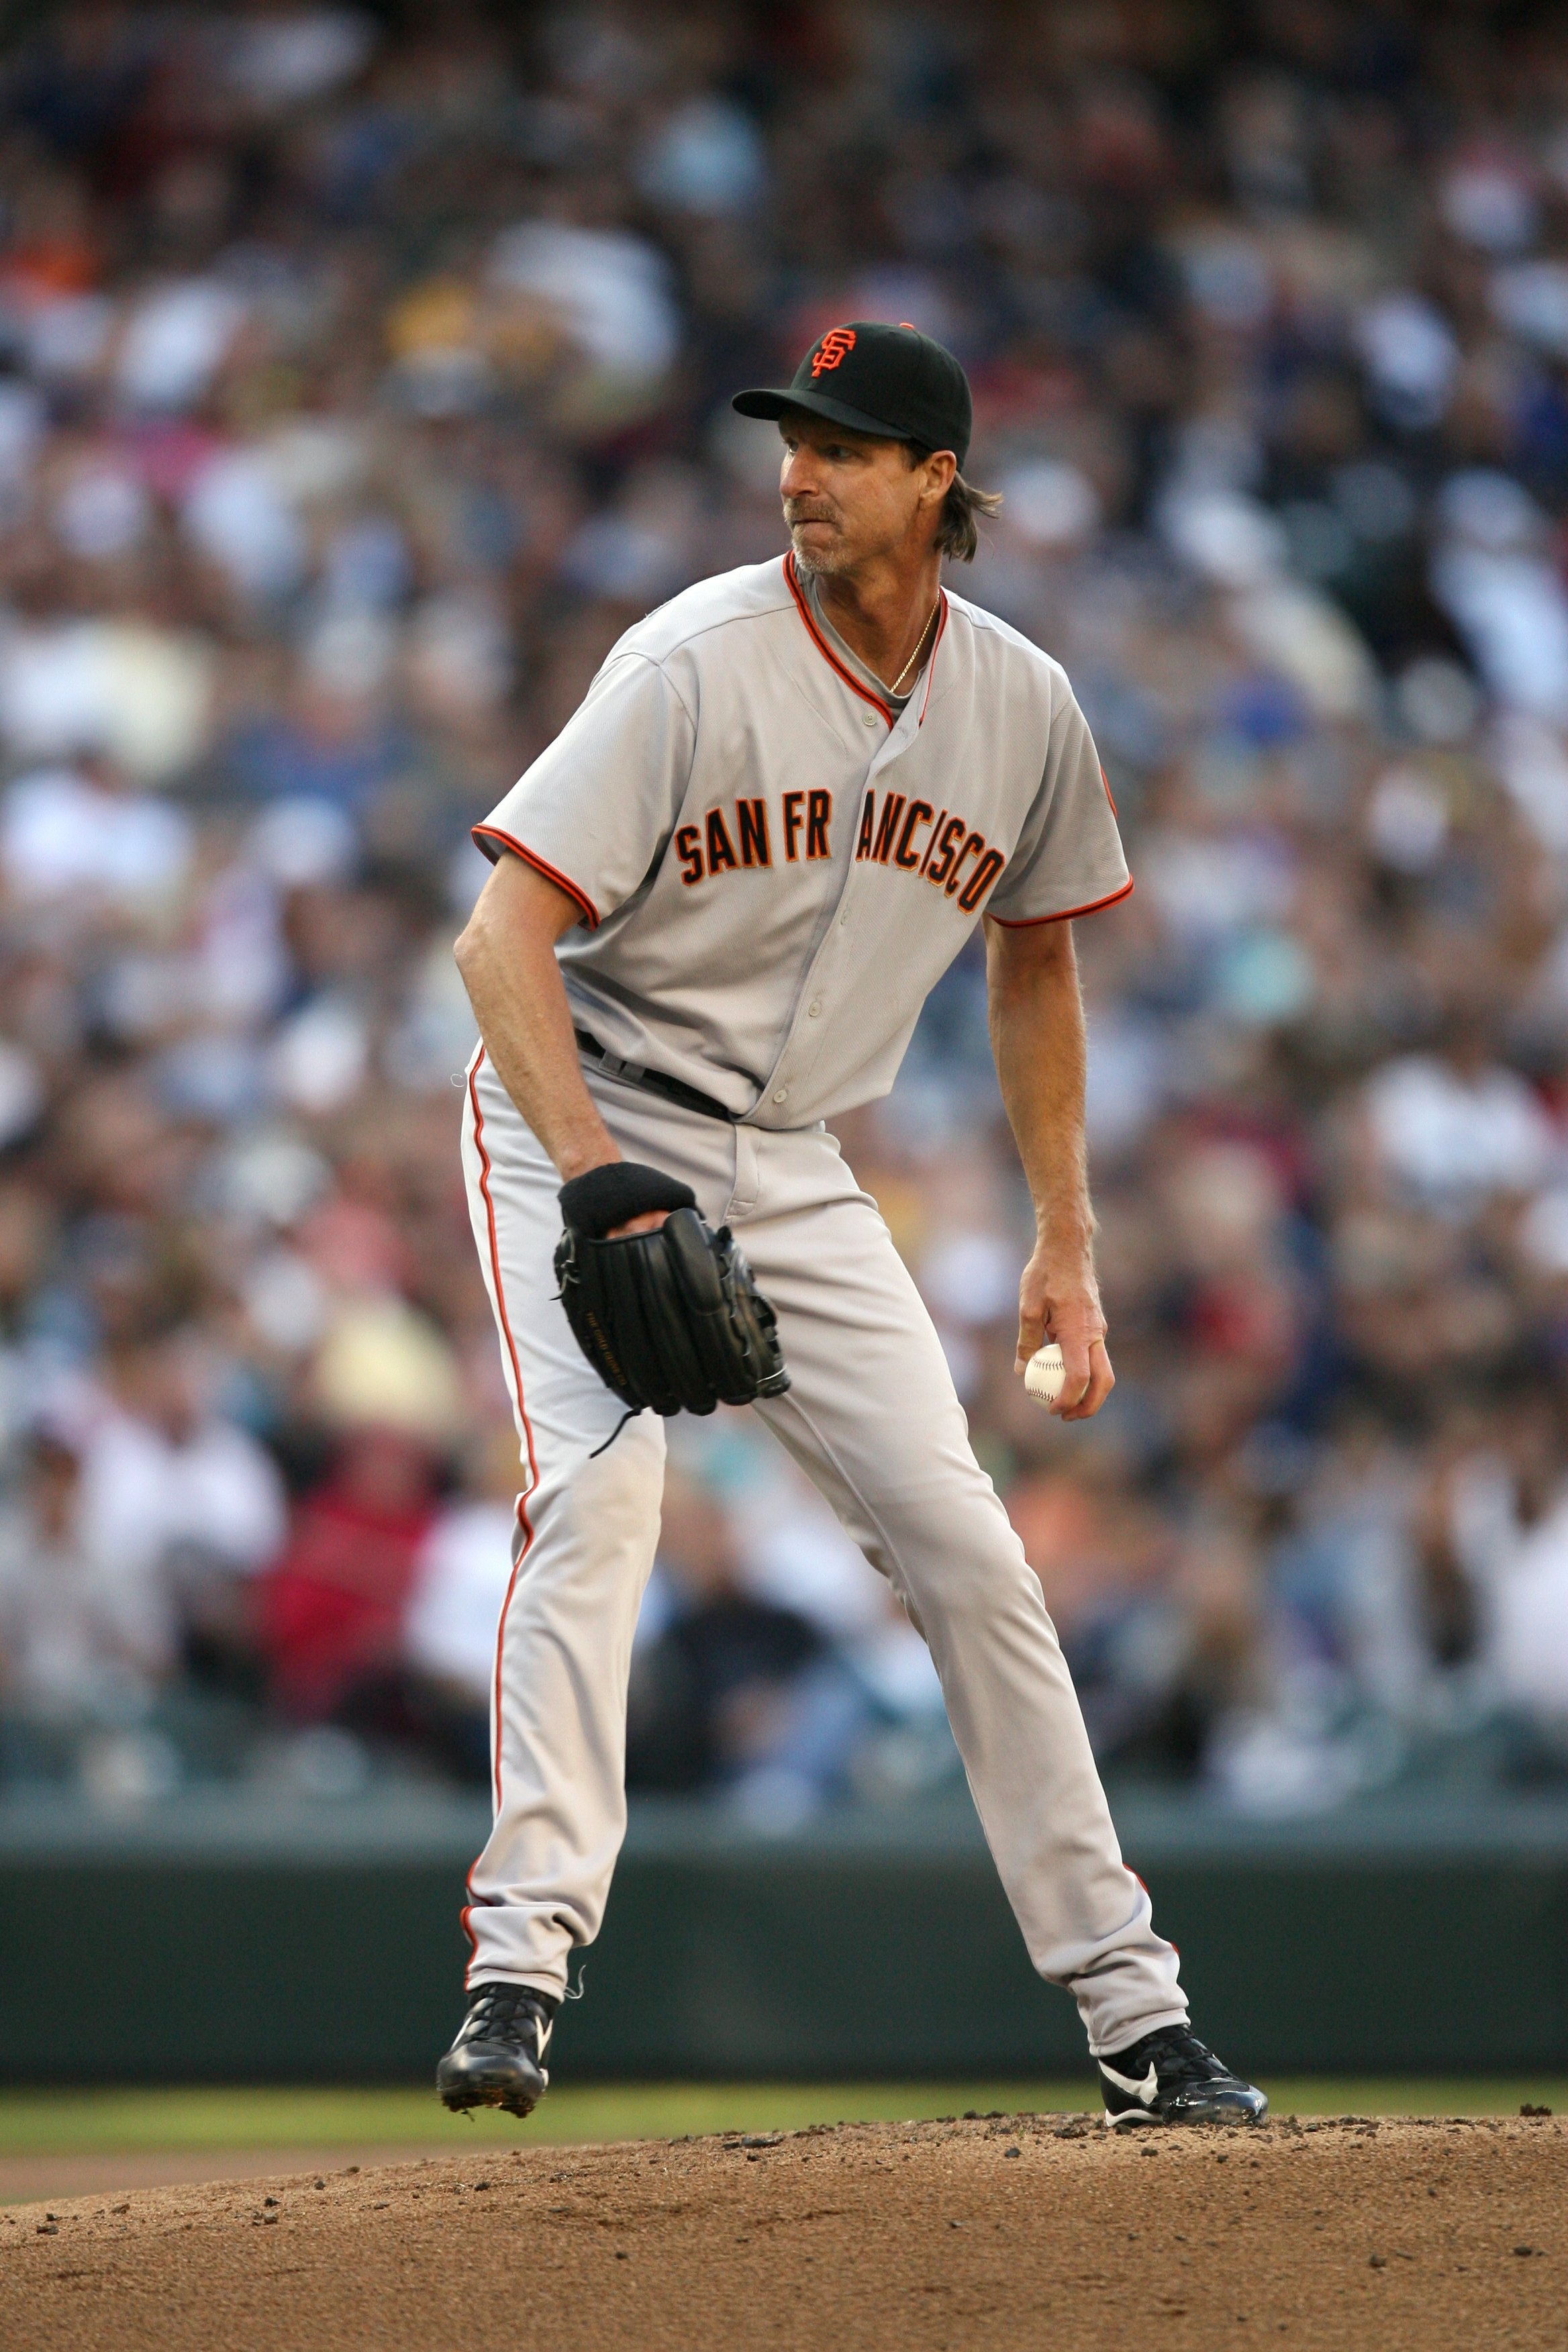 SEATTLE - MAY 22:  Randy Johnson #51 of the San Francisco Giants pitches during the game against the Seattle Mariners on May 22, 2009 in Seattle, Washington. The Mariners defeated the Giants 2-1 in twelve innings. (Photo by Otto Greule Jr/Getty Images)